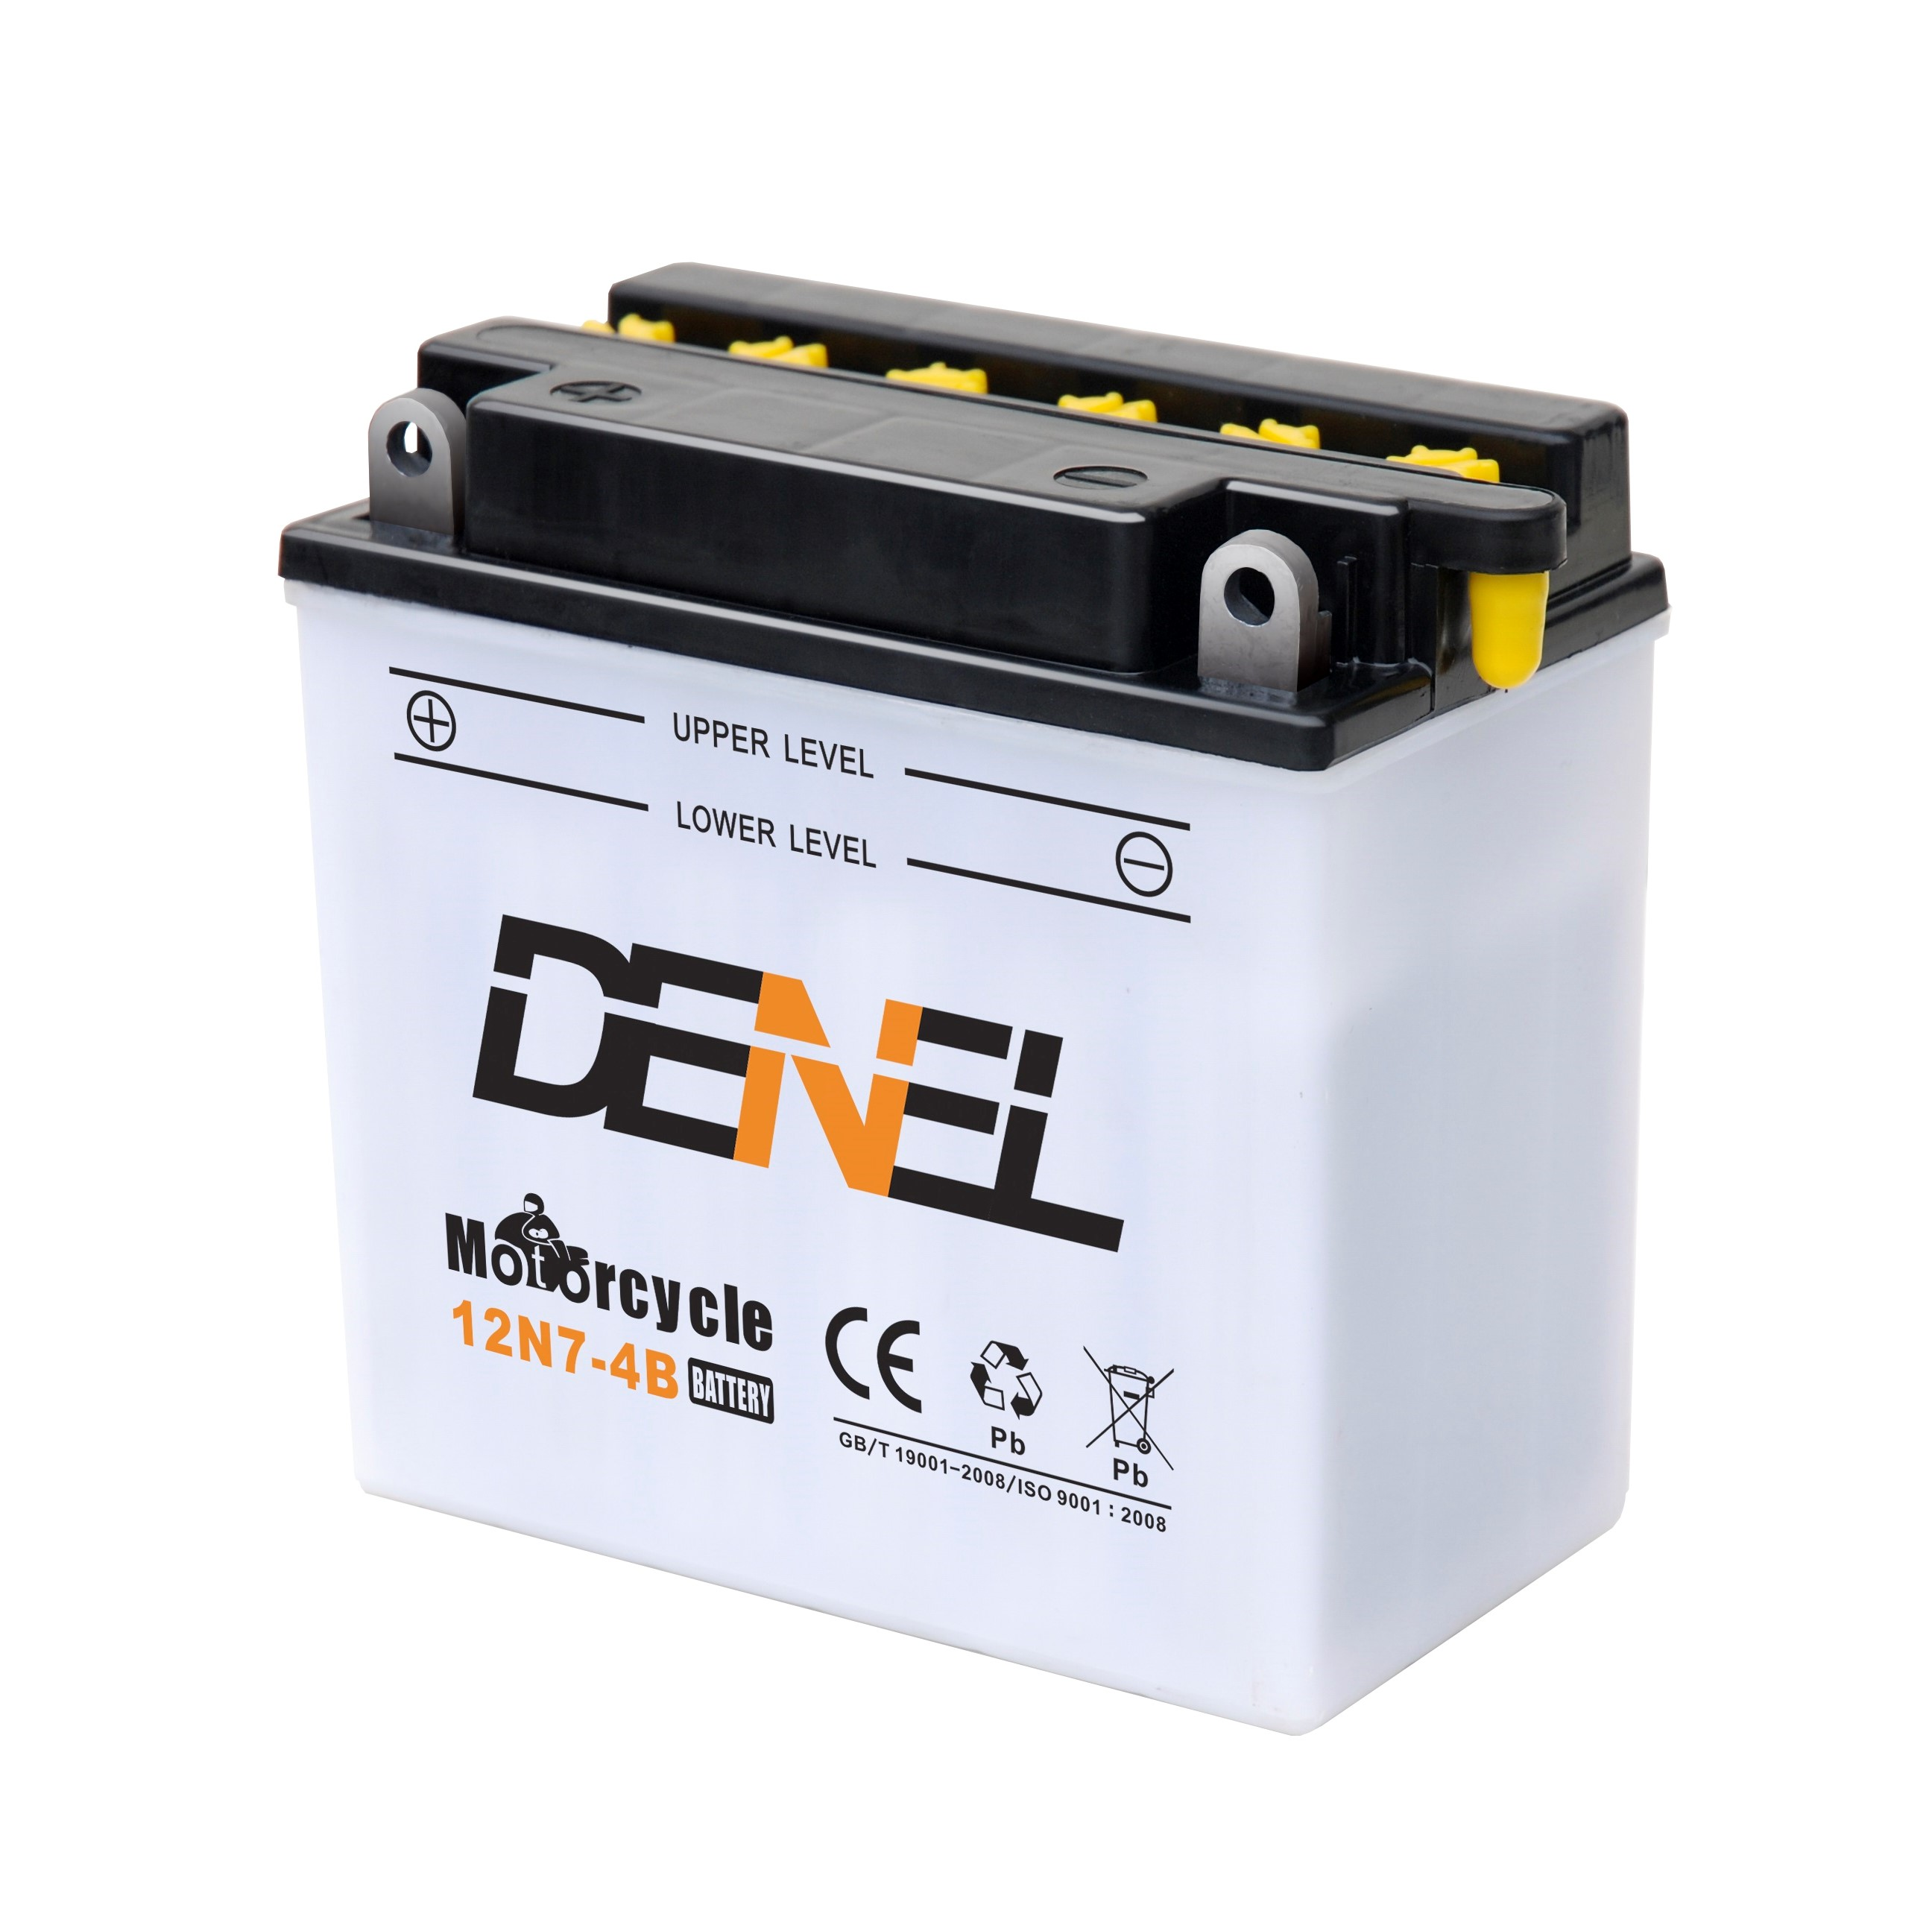 12N7-4B Dry charged Motorcycle battery with separate acid bottle